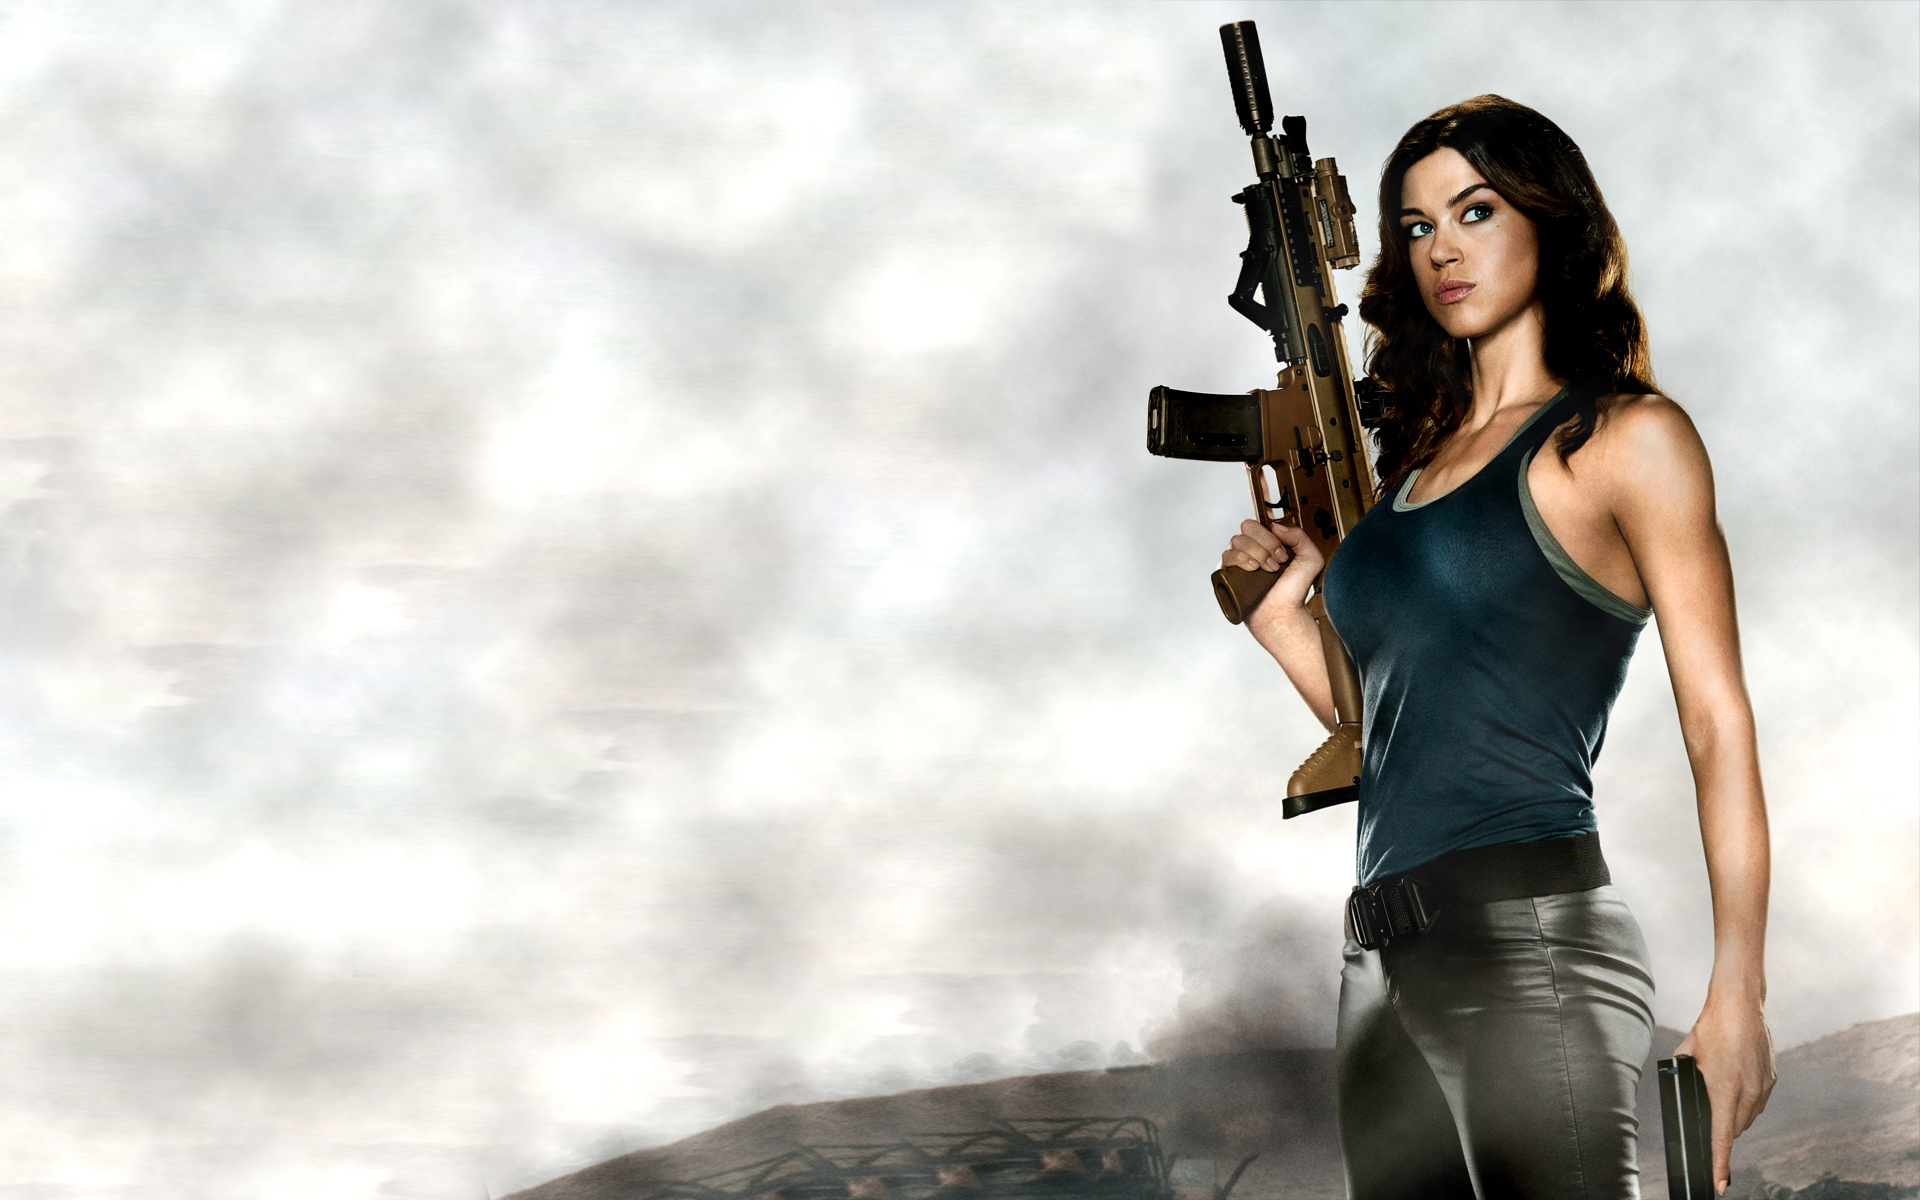 guns rifles machine guns women females girls sexy sensual babes 1920x1200